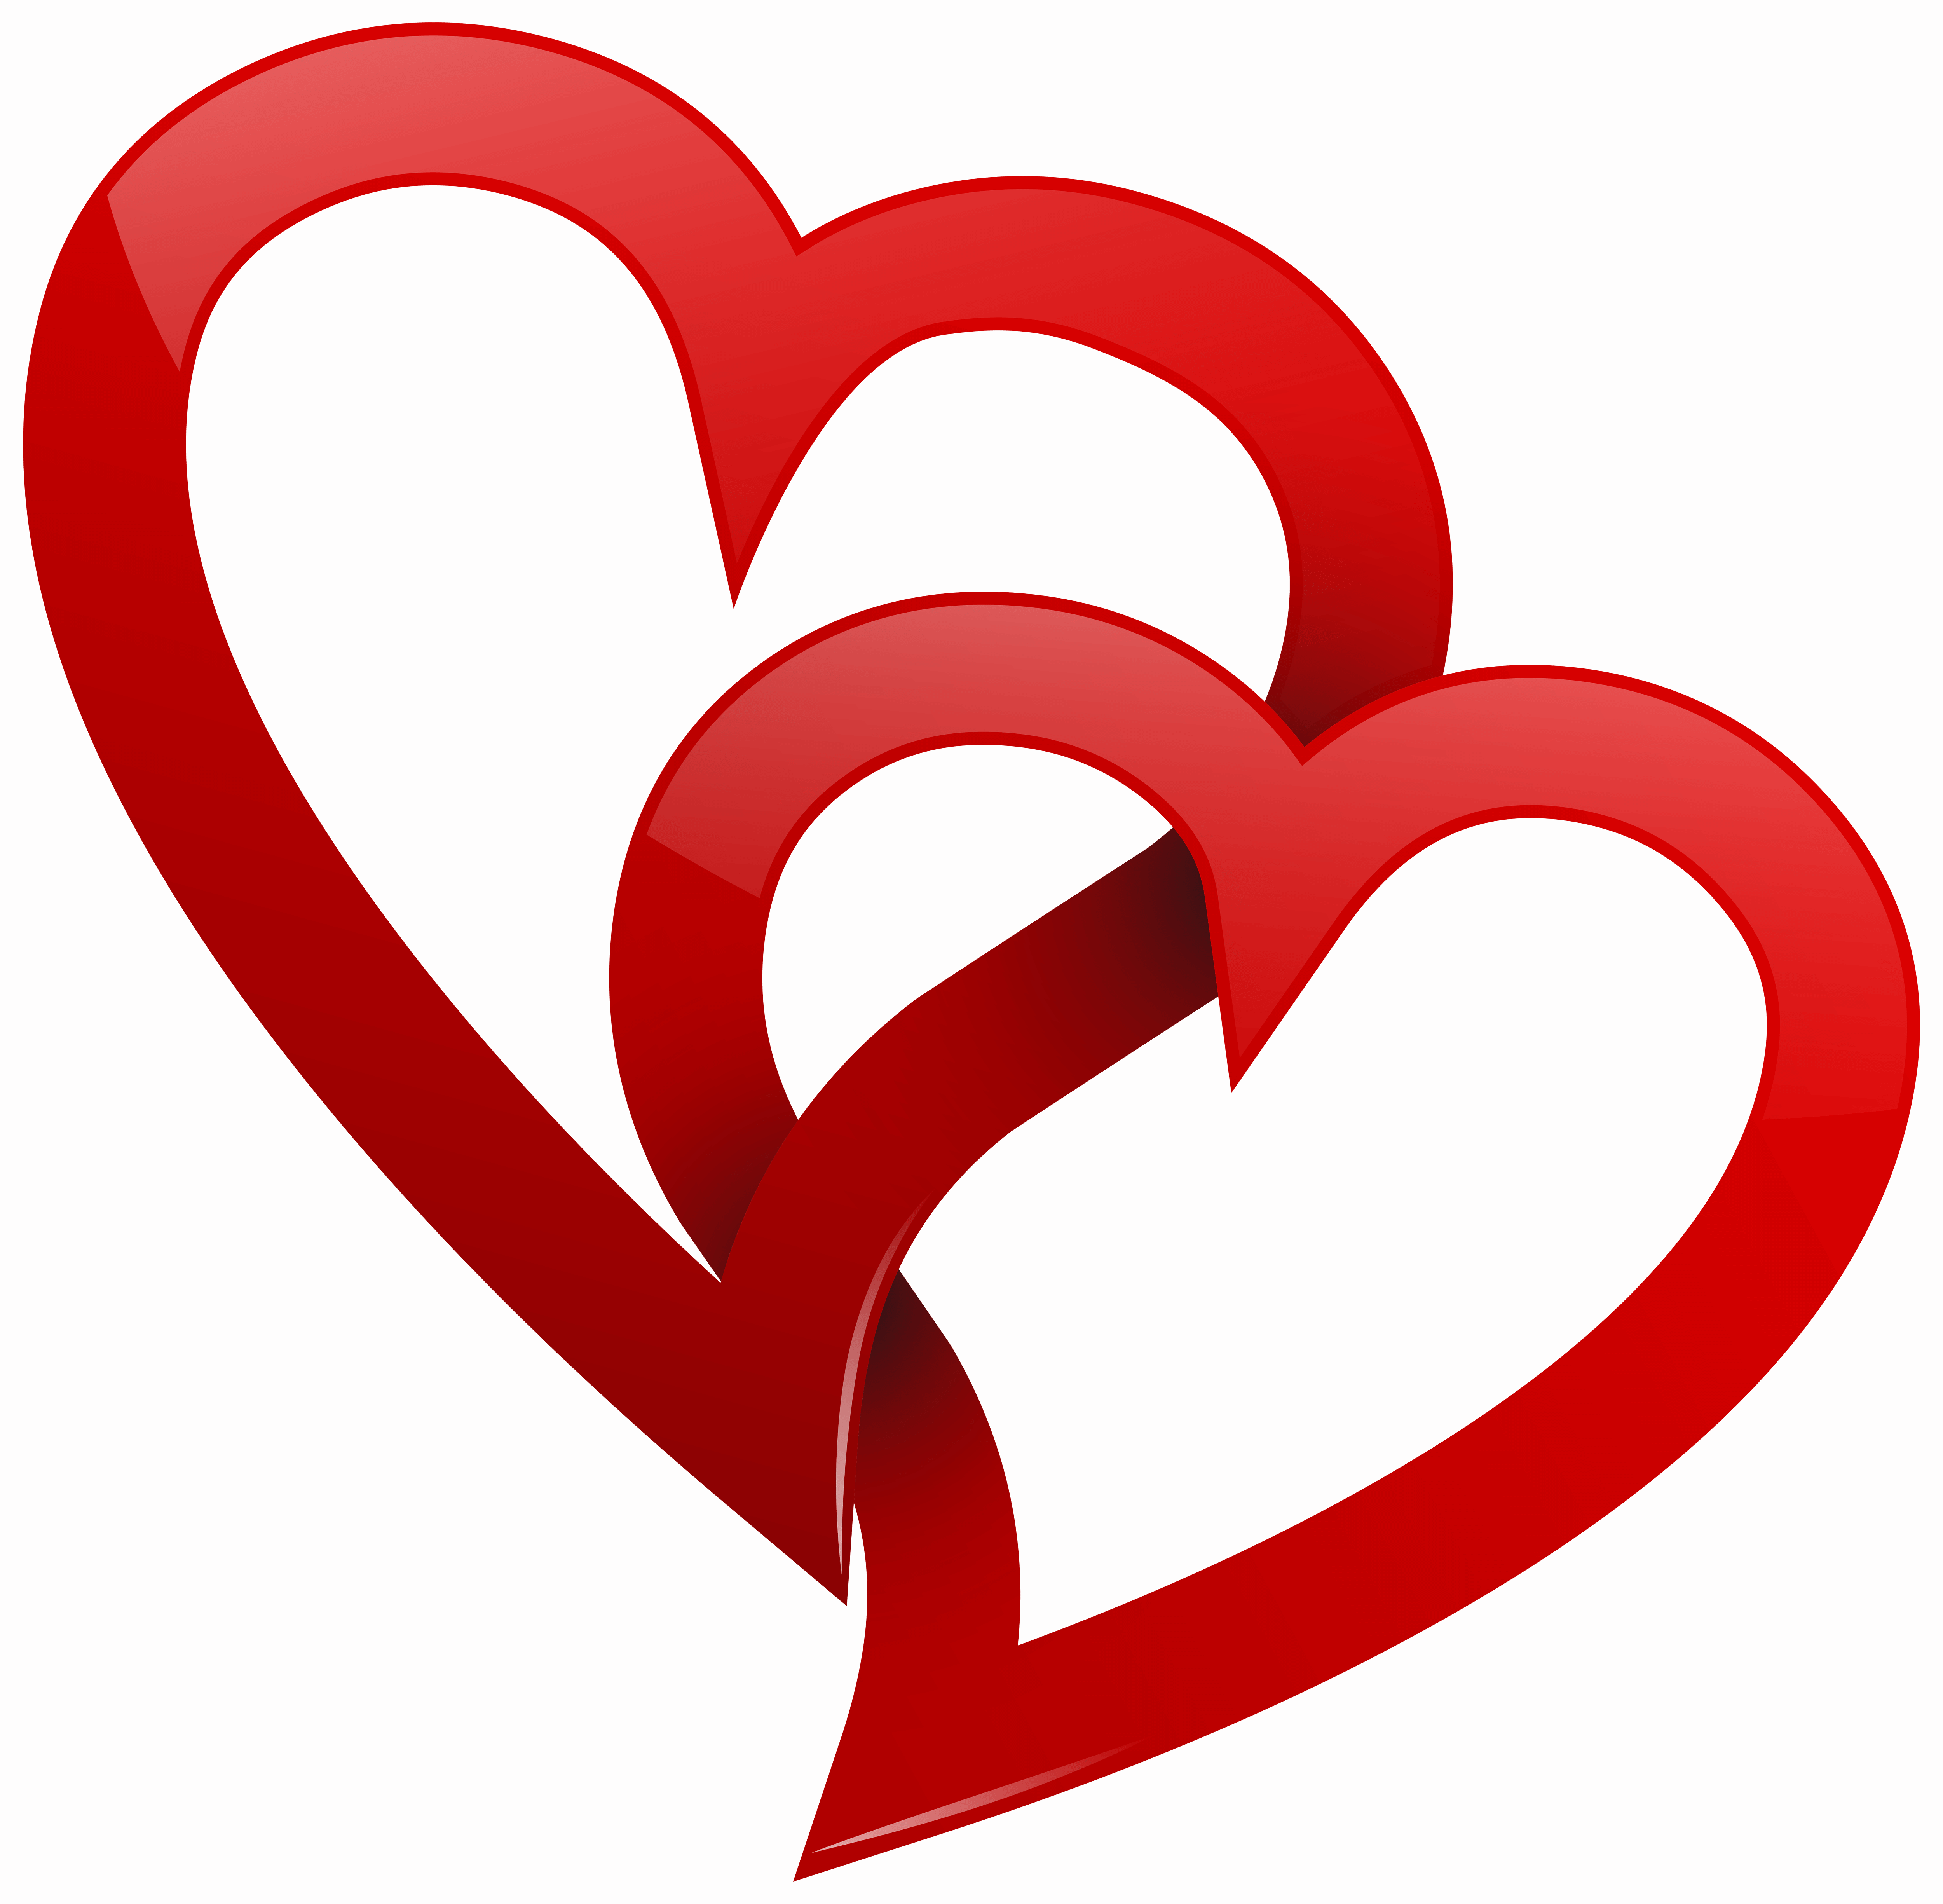 Two red hearts png. Life clipart heart